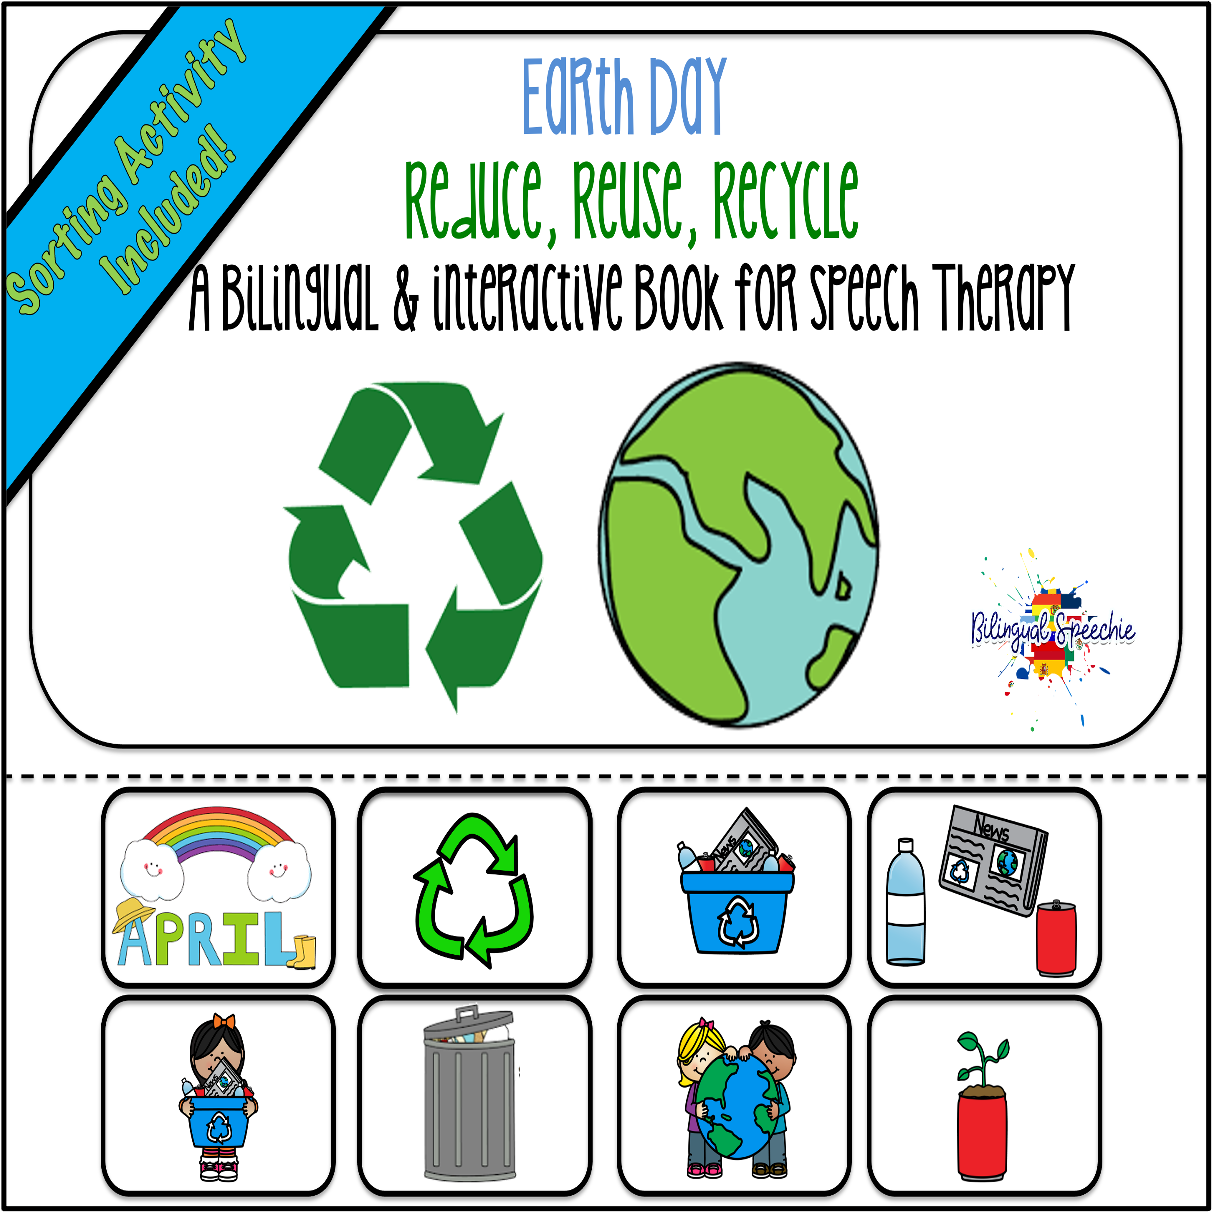 Earth Day & Recycling Bilingual Book for Speech Therapy